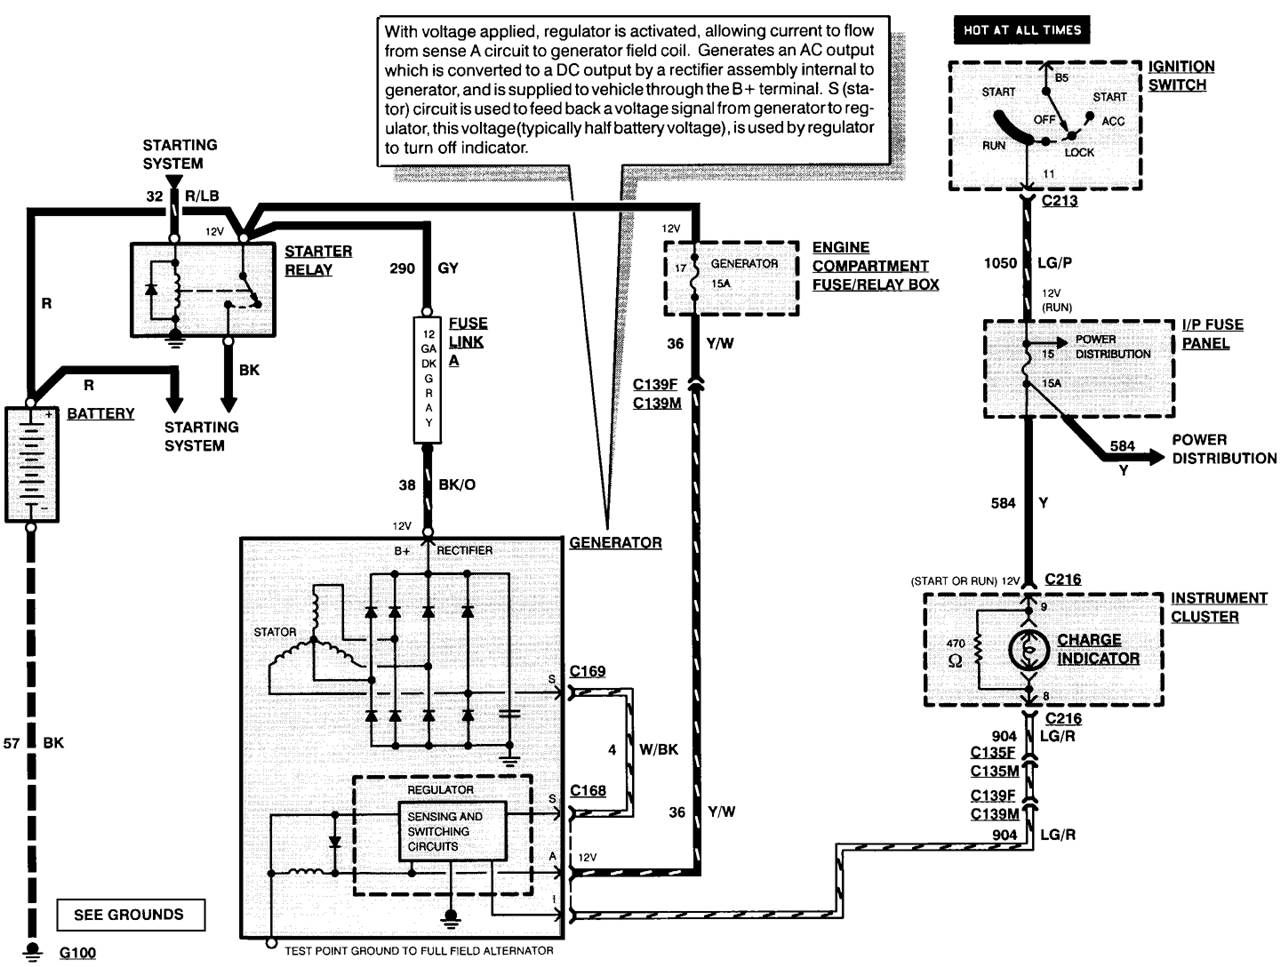 1995 Crown Victoria Alternator Wiring Diagram Will Be A Thing Mazda Mpv Ford Schematic Rh Theodocle Fion Com 1990 1992